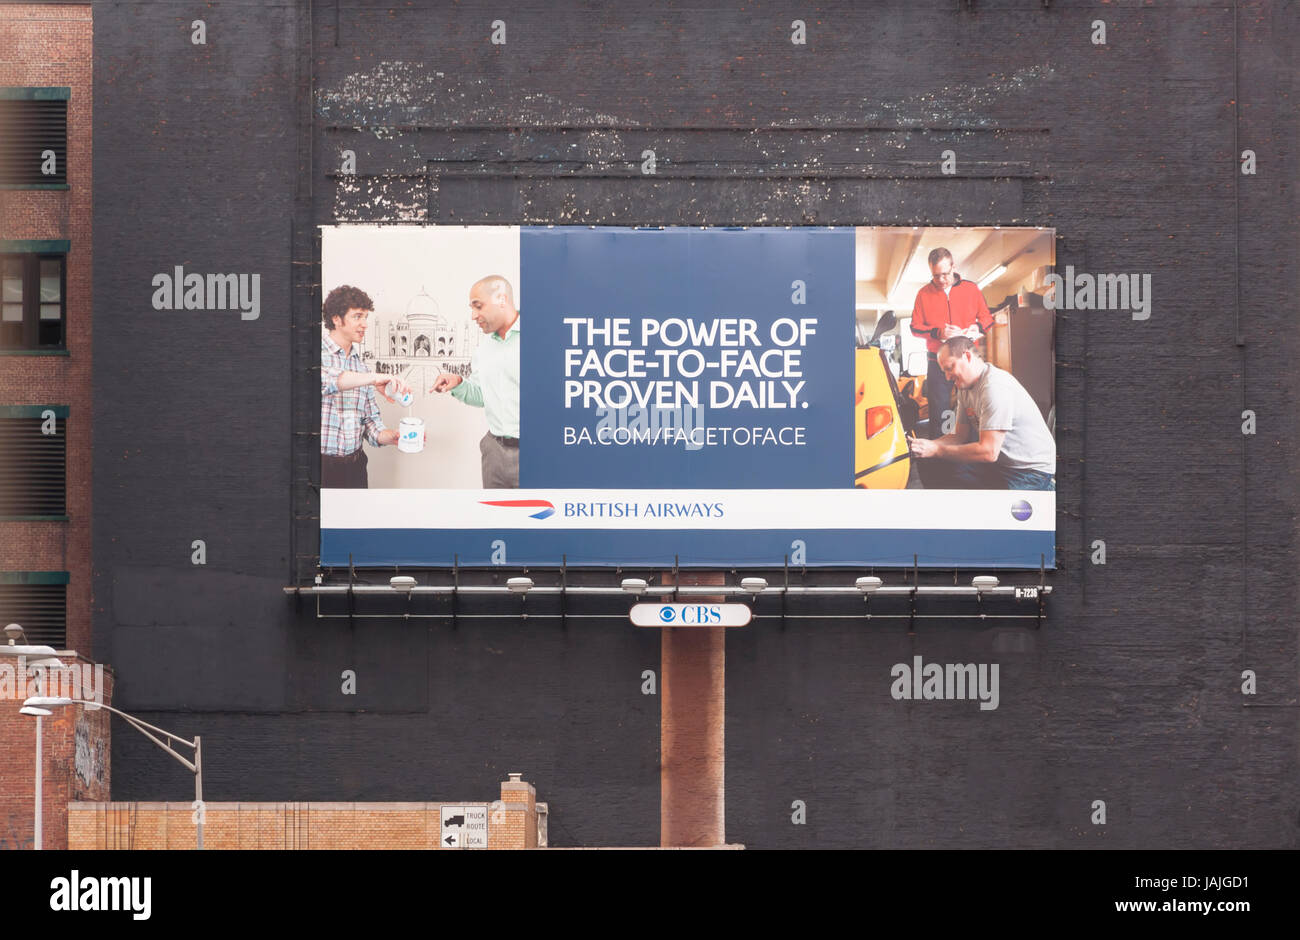 A billboard touting the power of face-to-face communication and interaction. - Stock Image